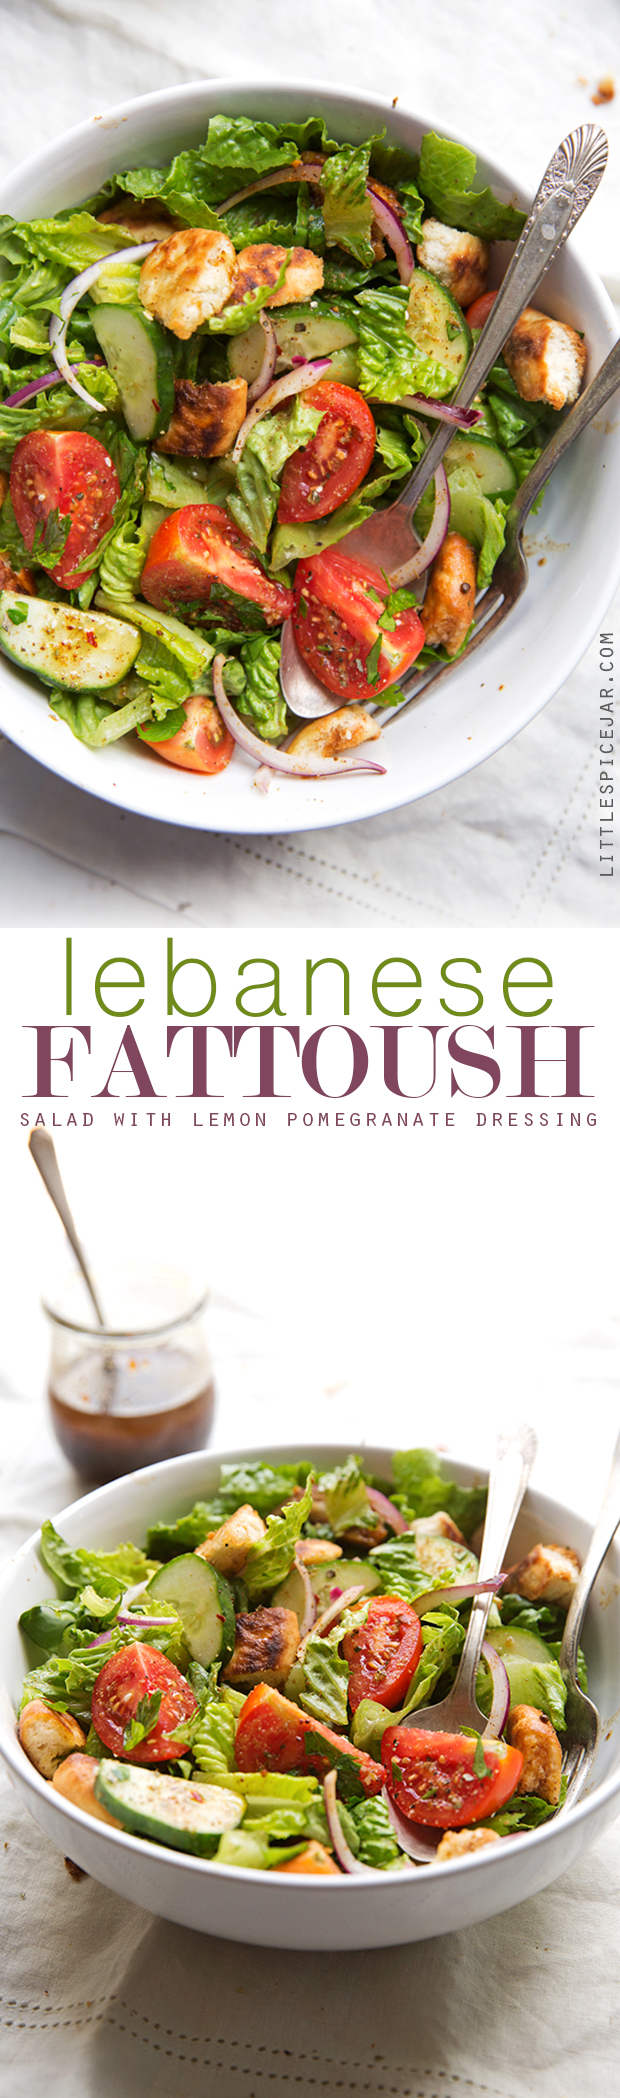 Lebanese Fattoush Salad with Lemon Pomegranate Dressing - This salad is bold and flavorful topped with homemade pita chips and a zippy middle eastern style dressing #fattoush #fattoushsalad #lebanese #salad | Littlespicejar.com